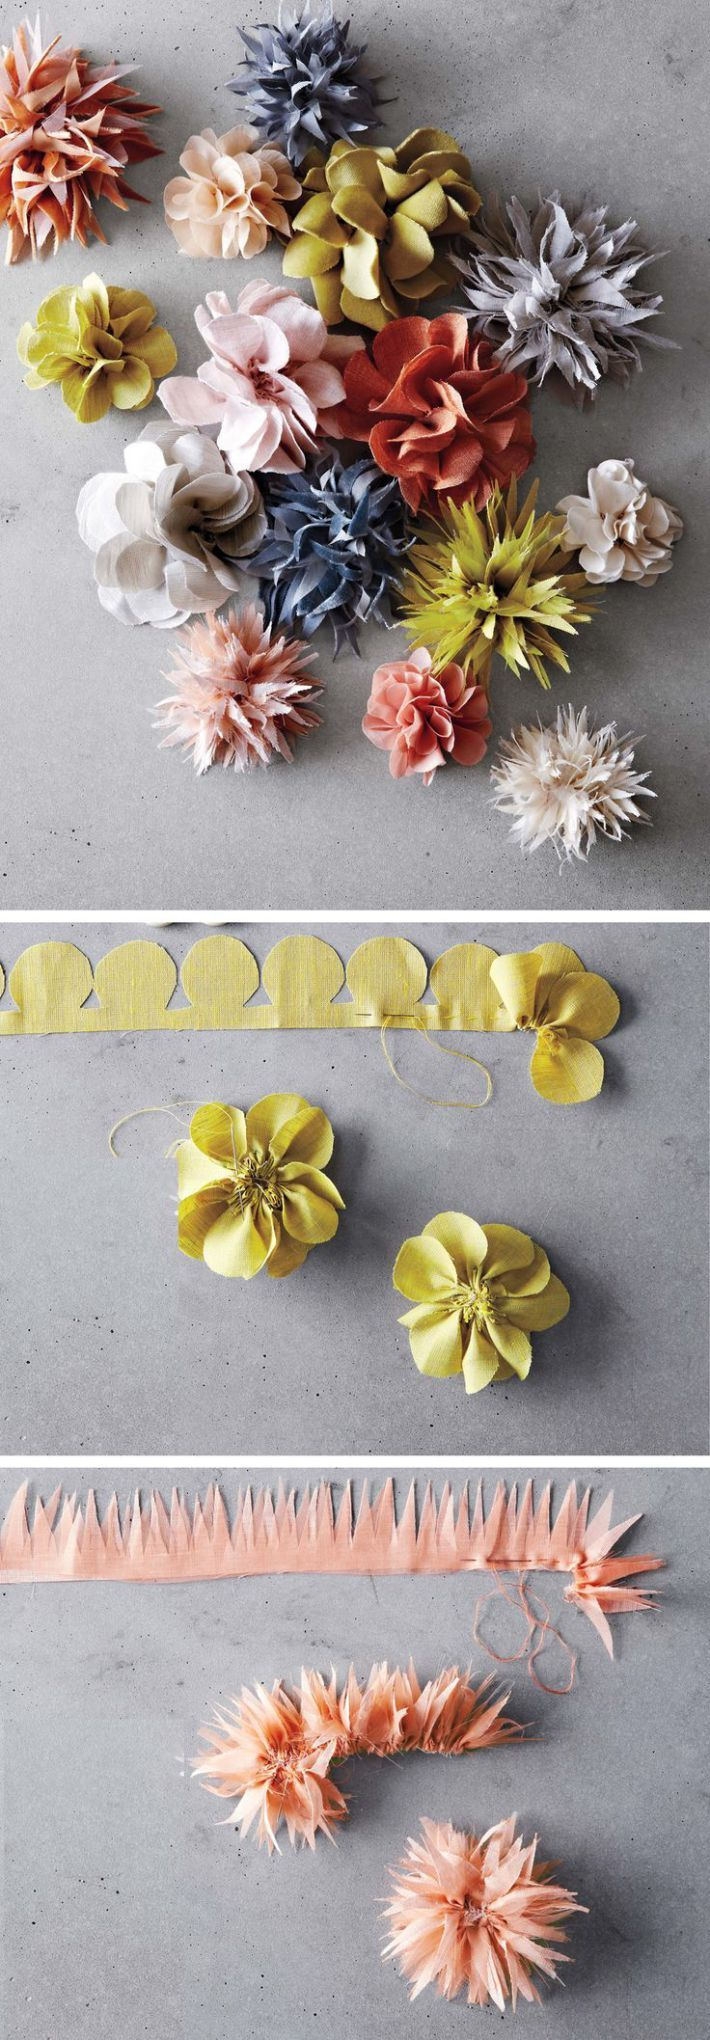 These gorgeous fabric flowers make the perfect accessory when attached to a brooch, headband or pin. Martha Stewart shares the full tutorial. - Sewtorial